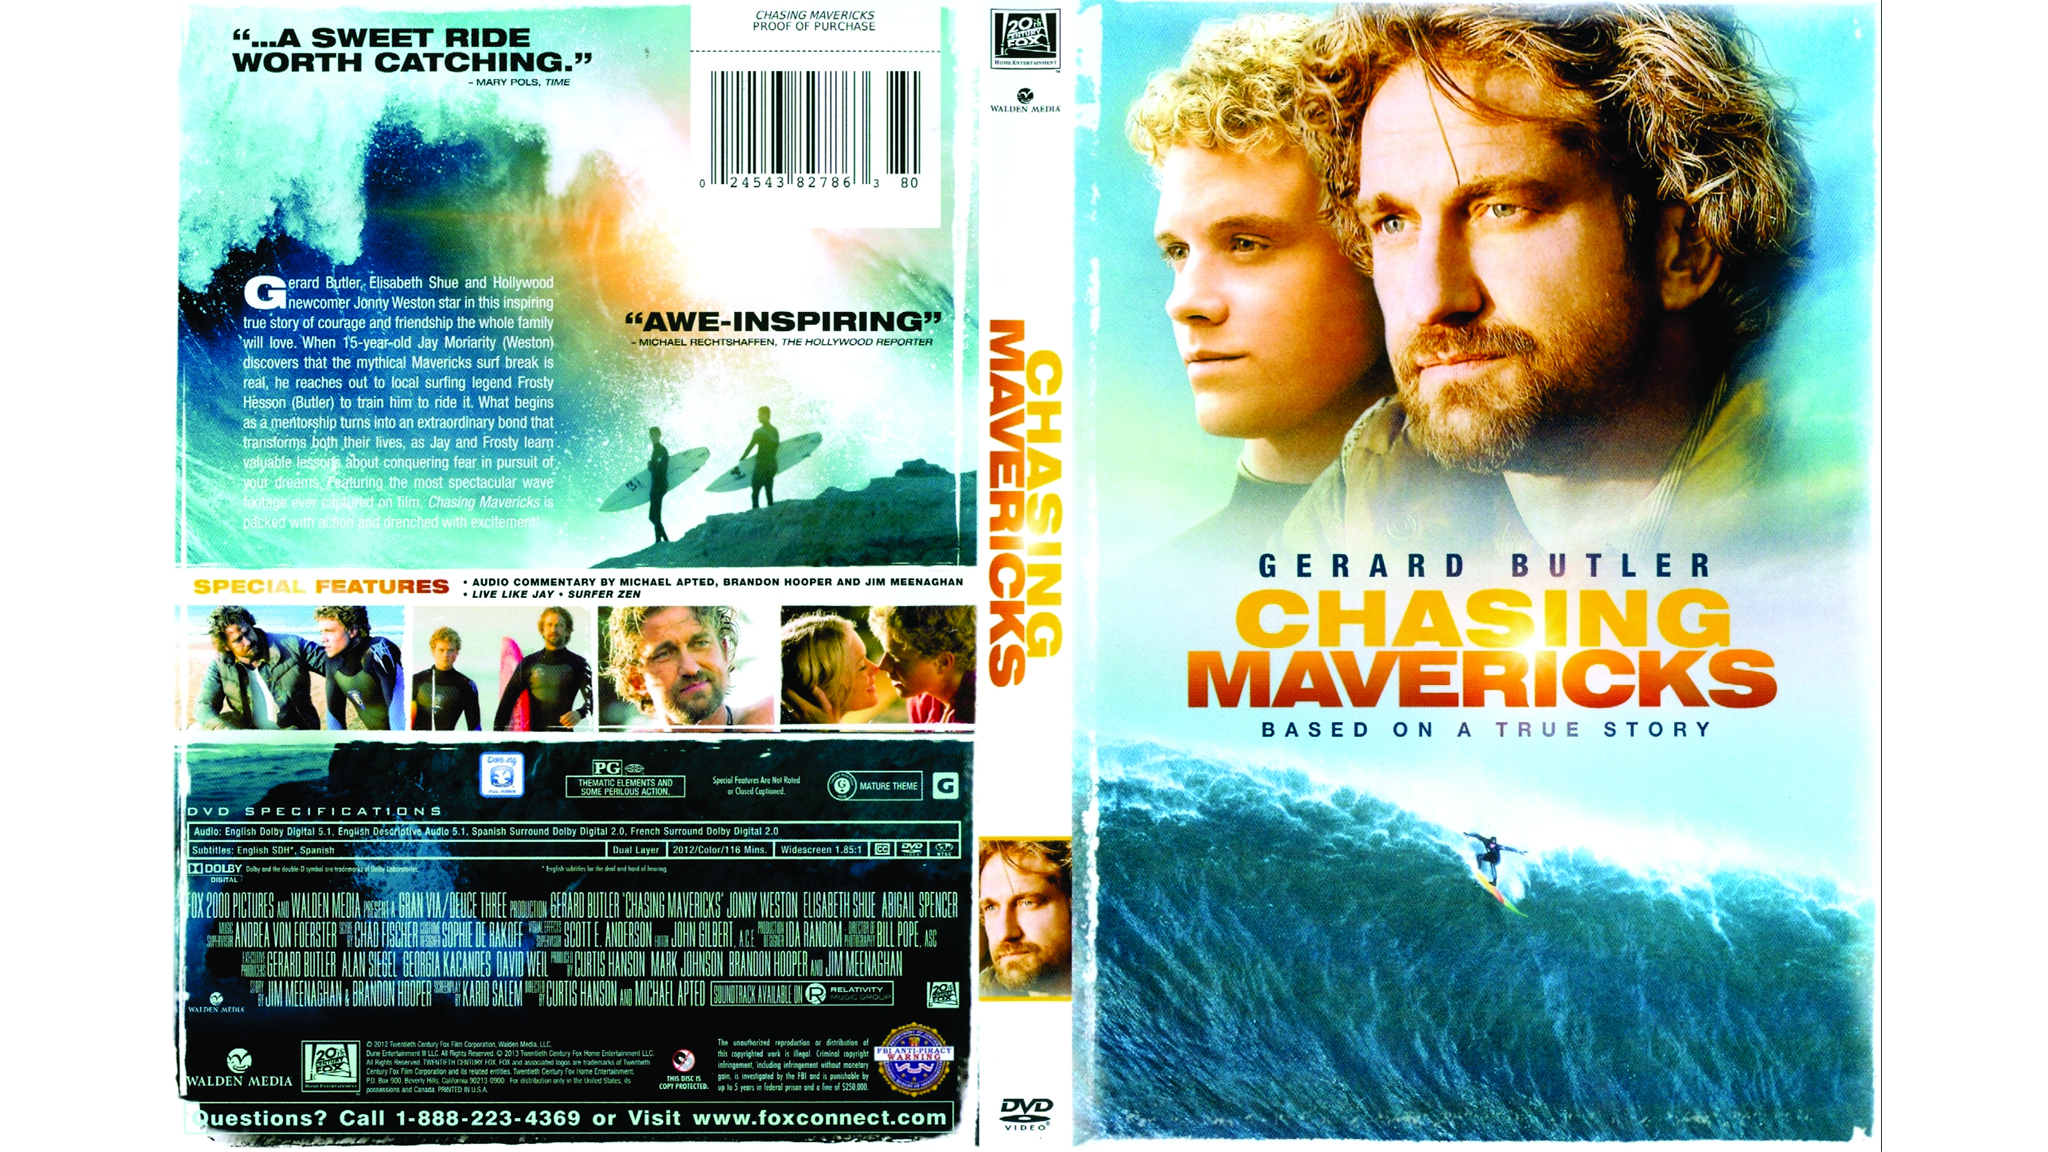 'Chasing Mavericks' is available on DVD this week.